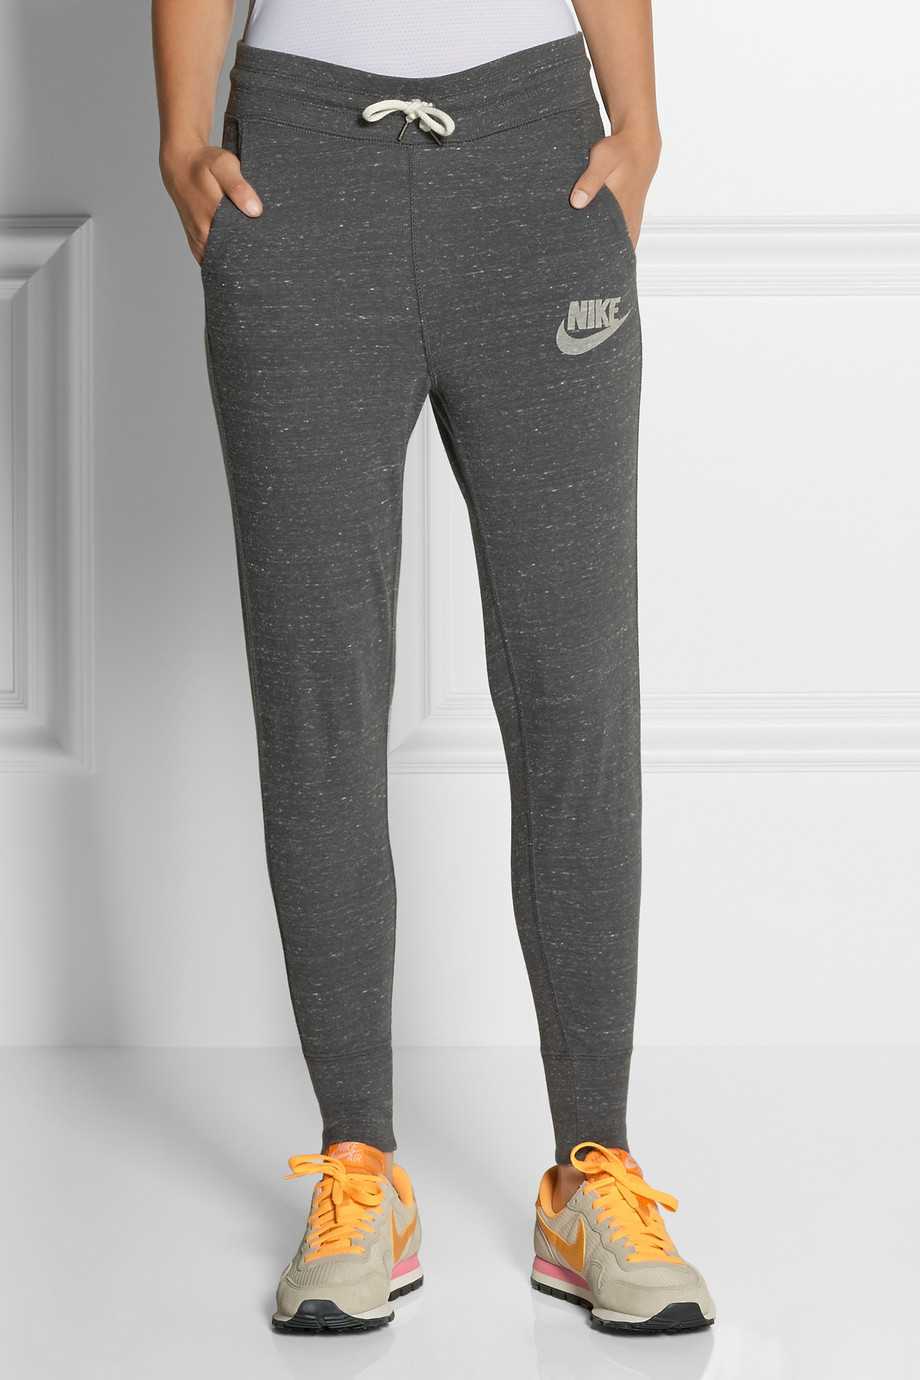 75d48742bc7b Nike Gym Vintage Organic Cottonblend Jersey Track Pants in Gray - Lyst